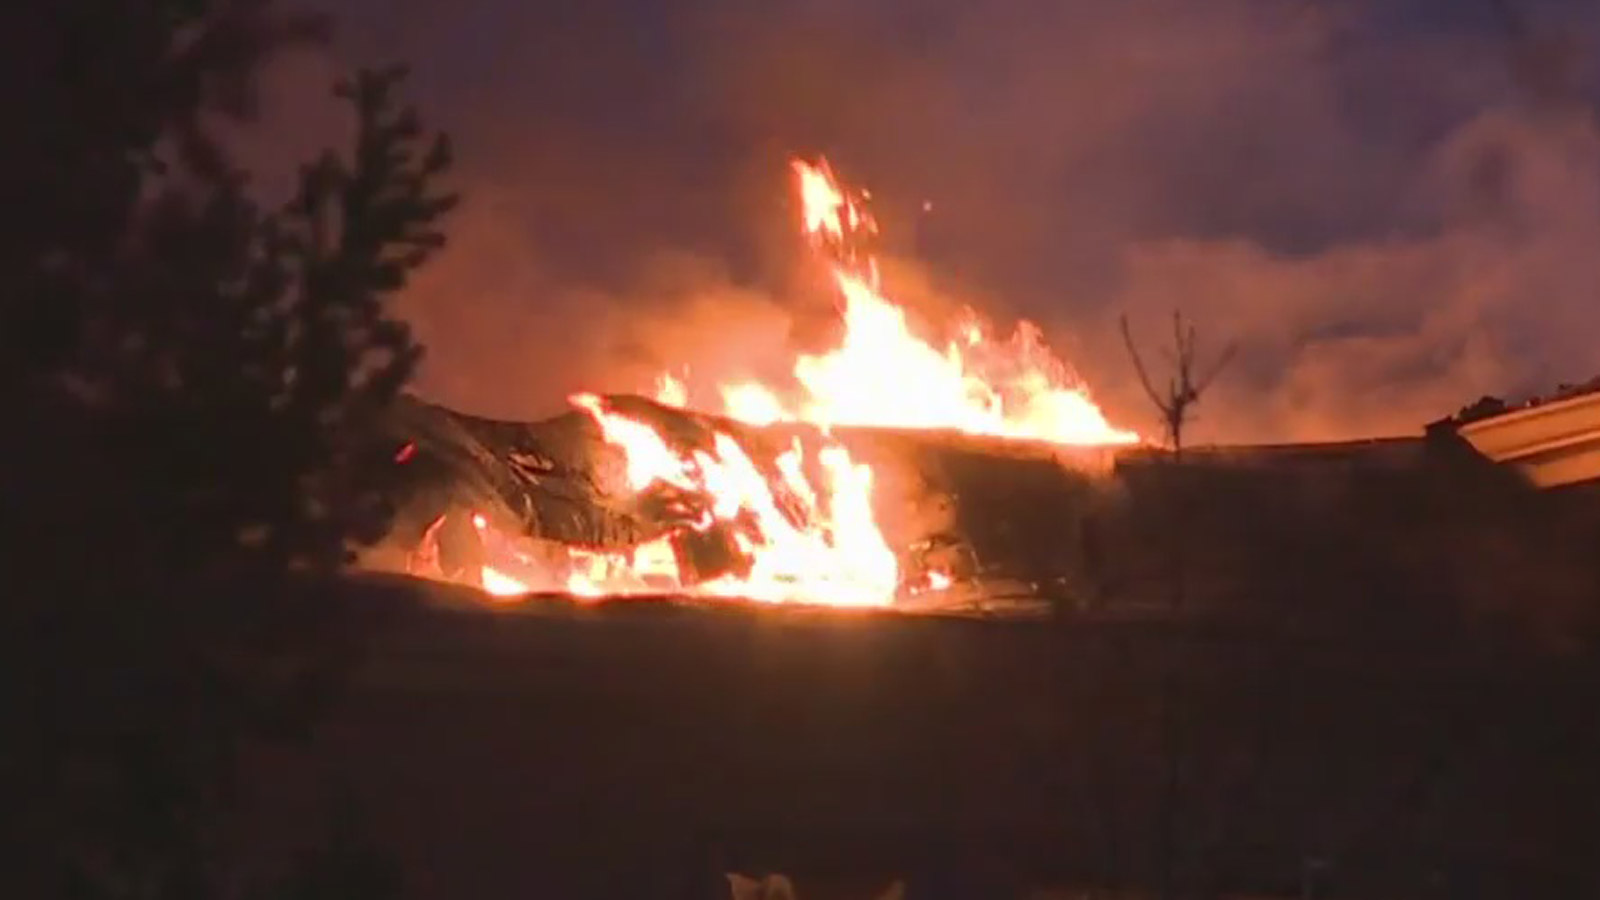 The house fire in Larkspur (credit: CBS)